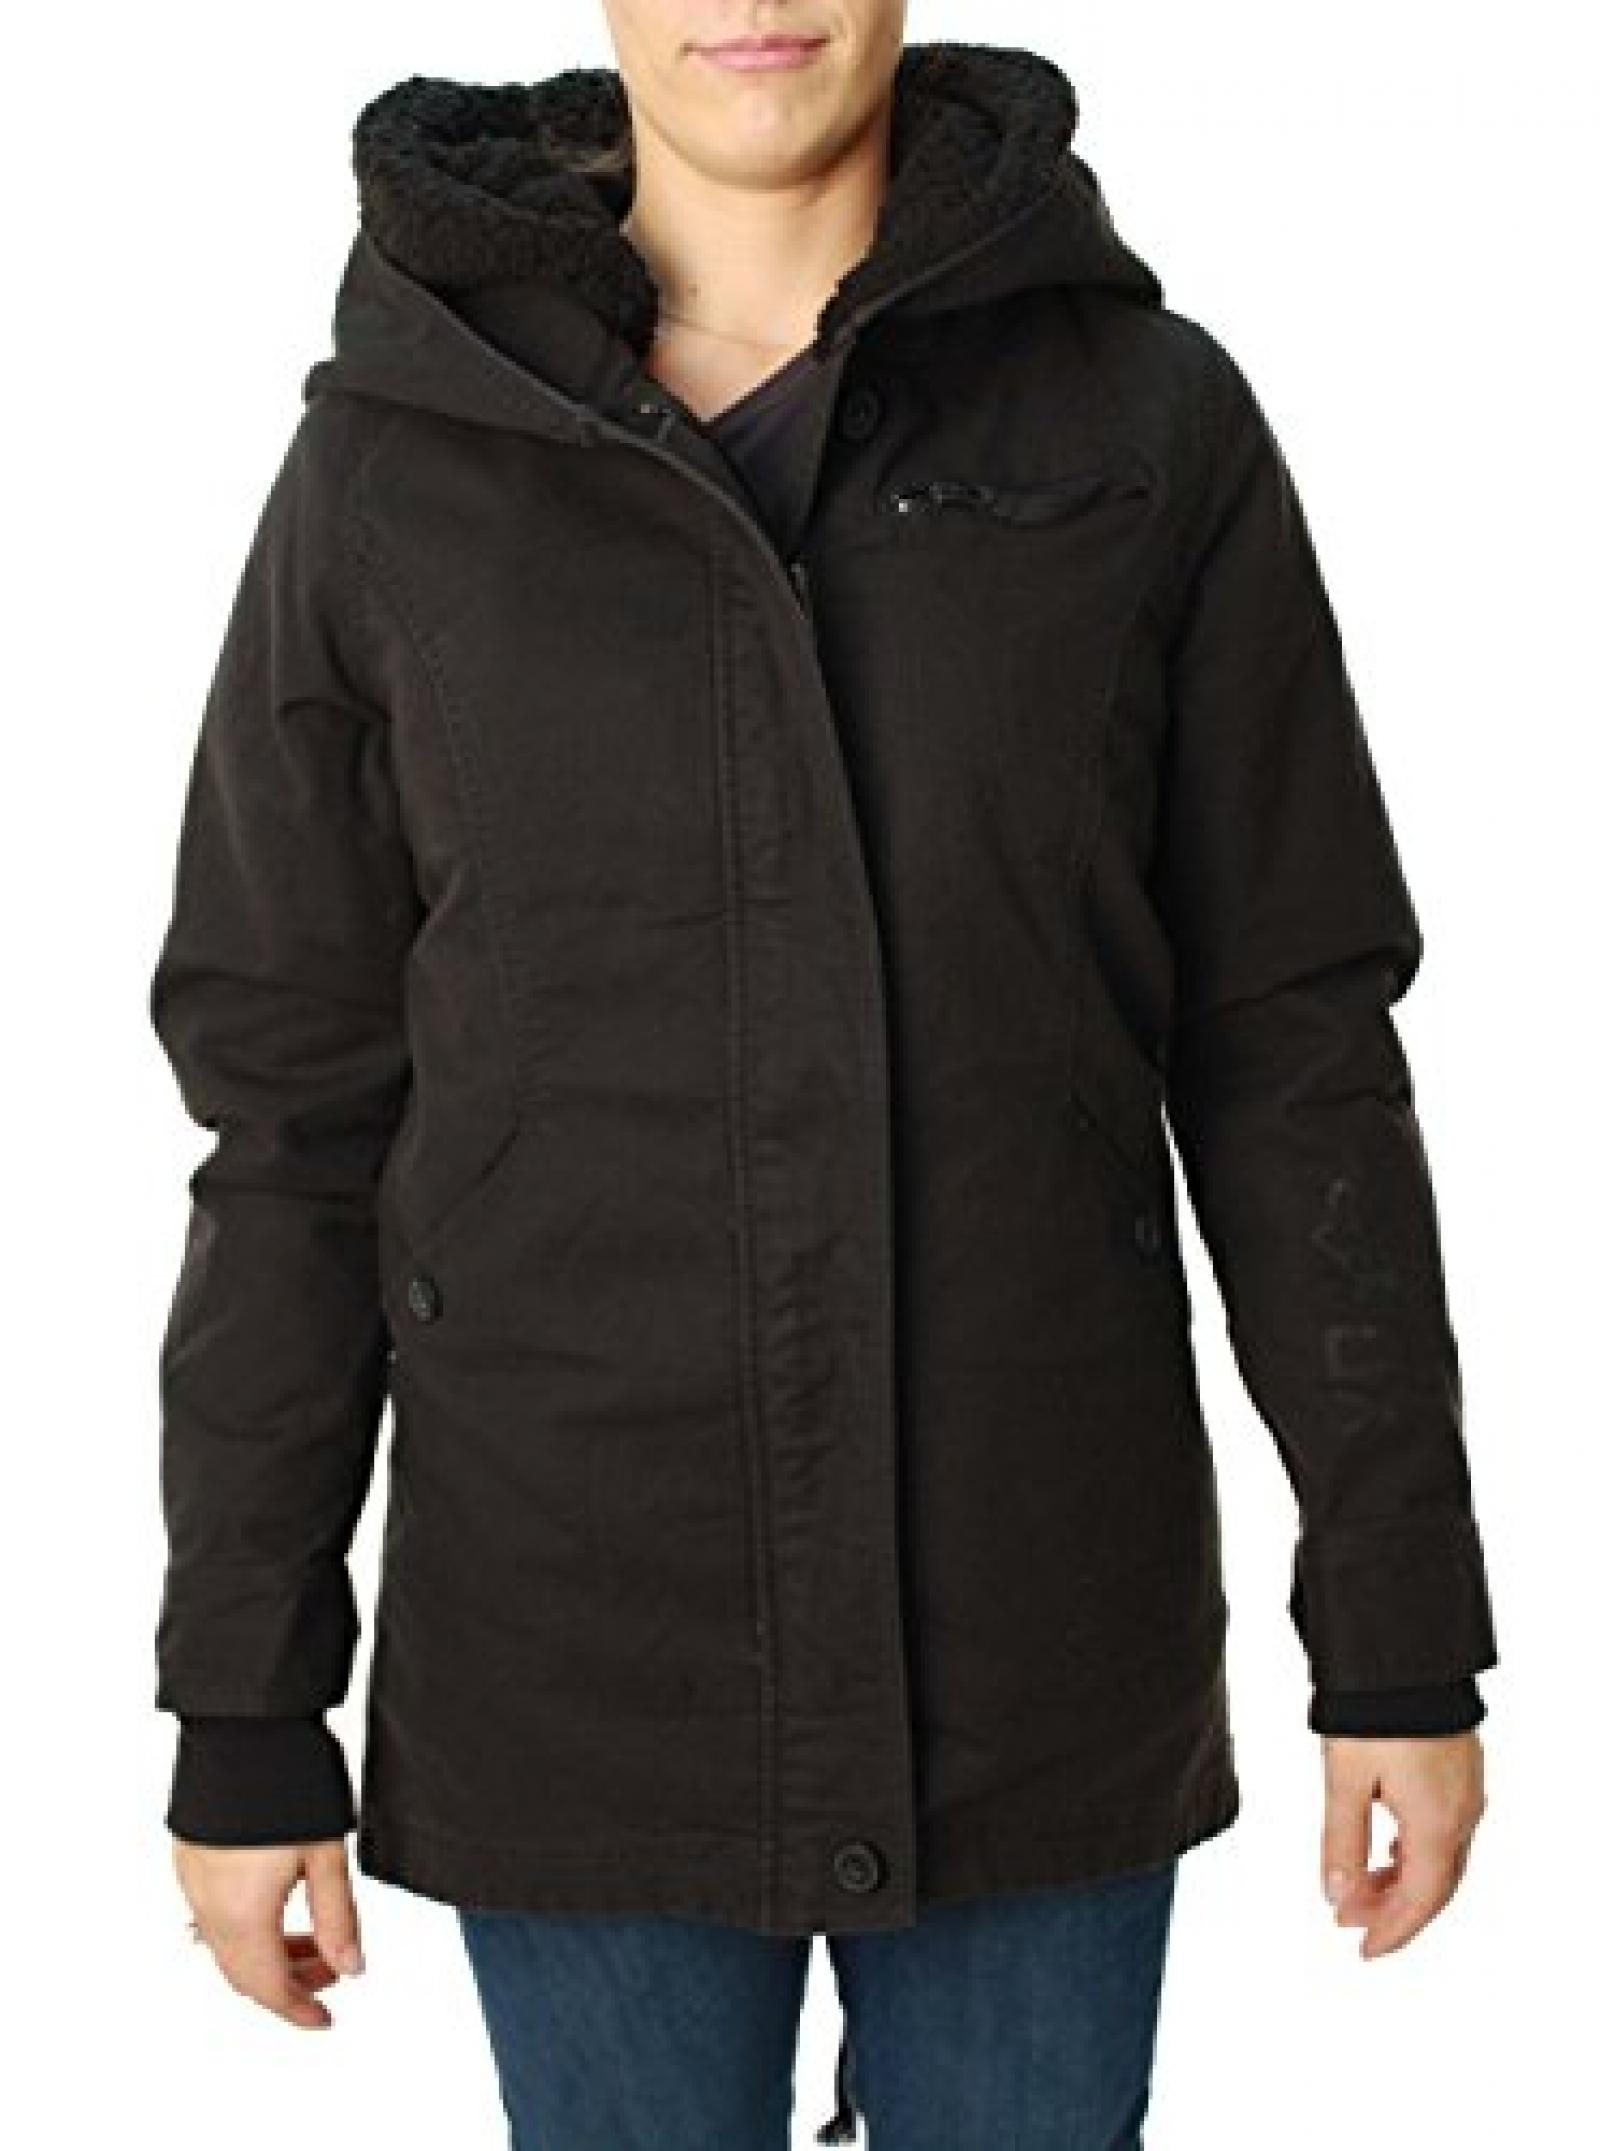 Fox Womens Jacket Stormy Schwarz